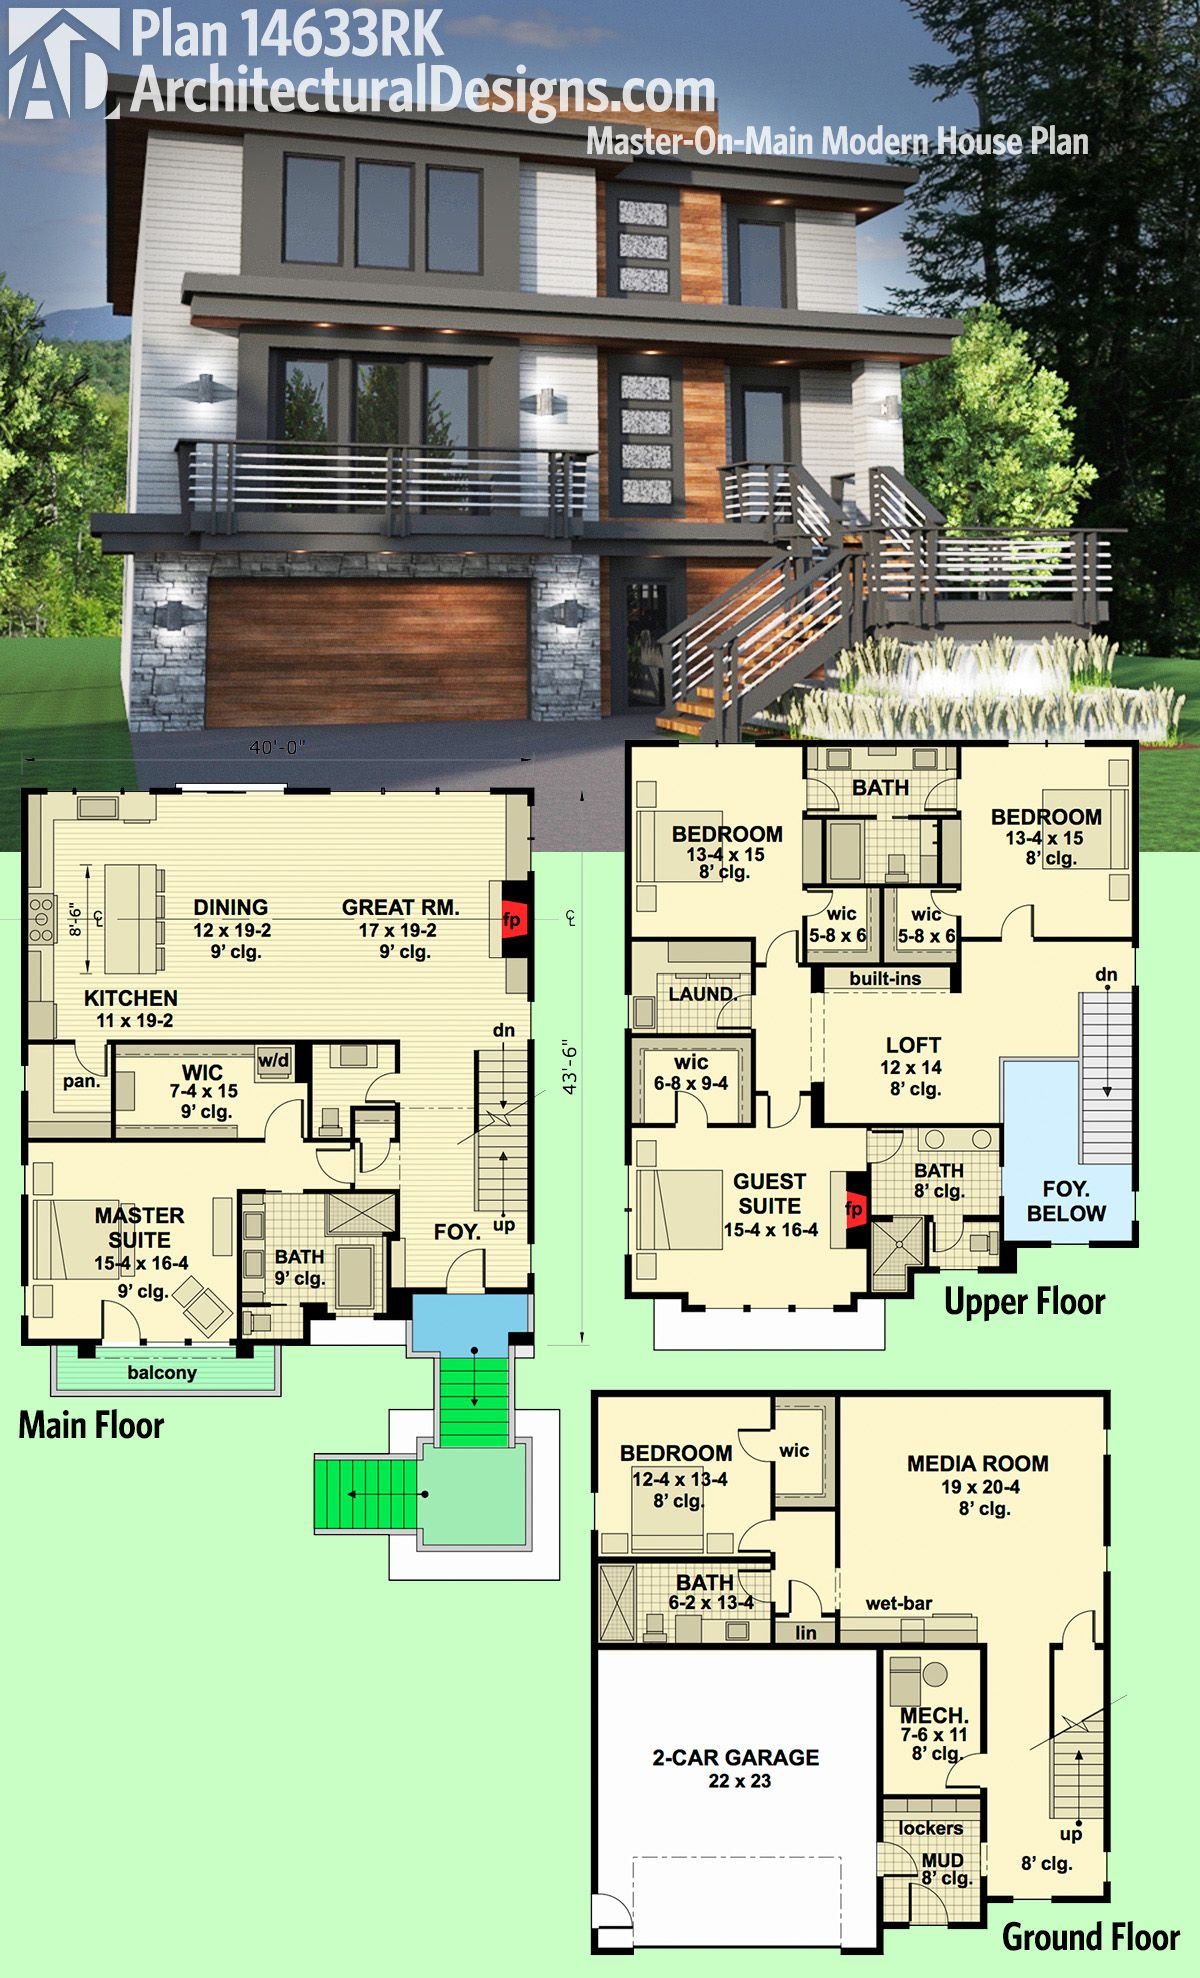 Plan 14633RK Master On Main Modern House Plan Modern house plans